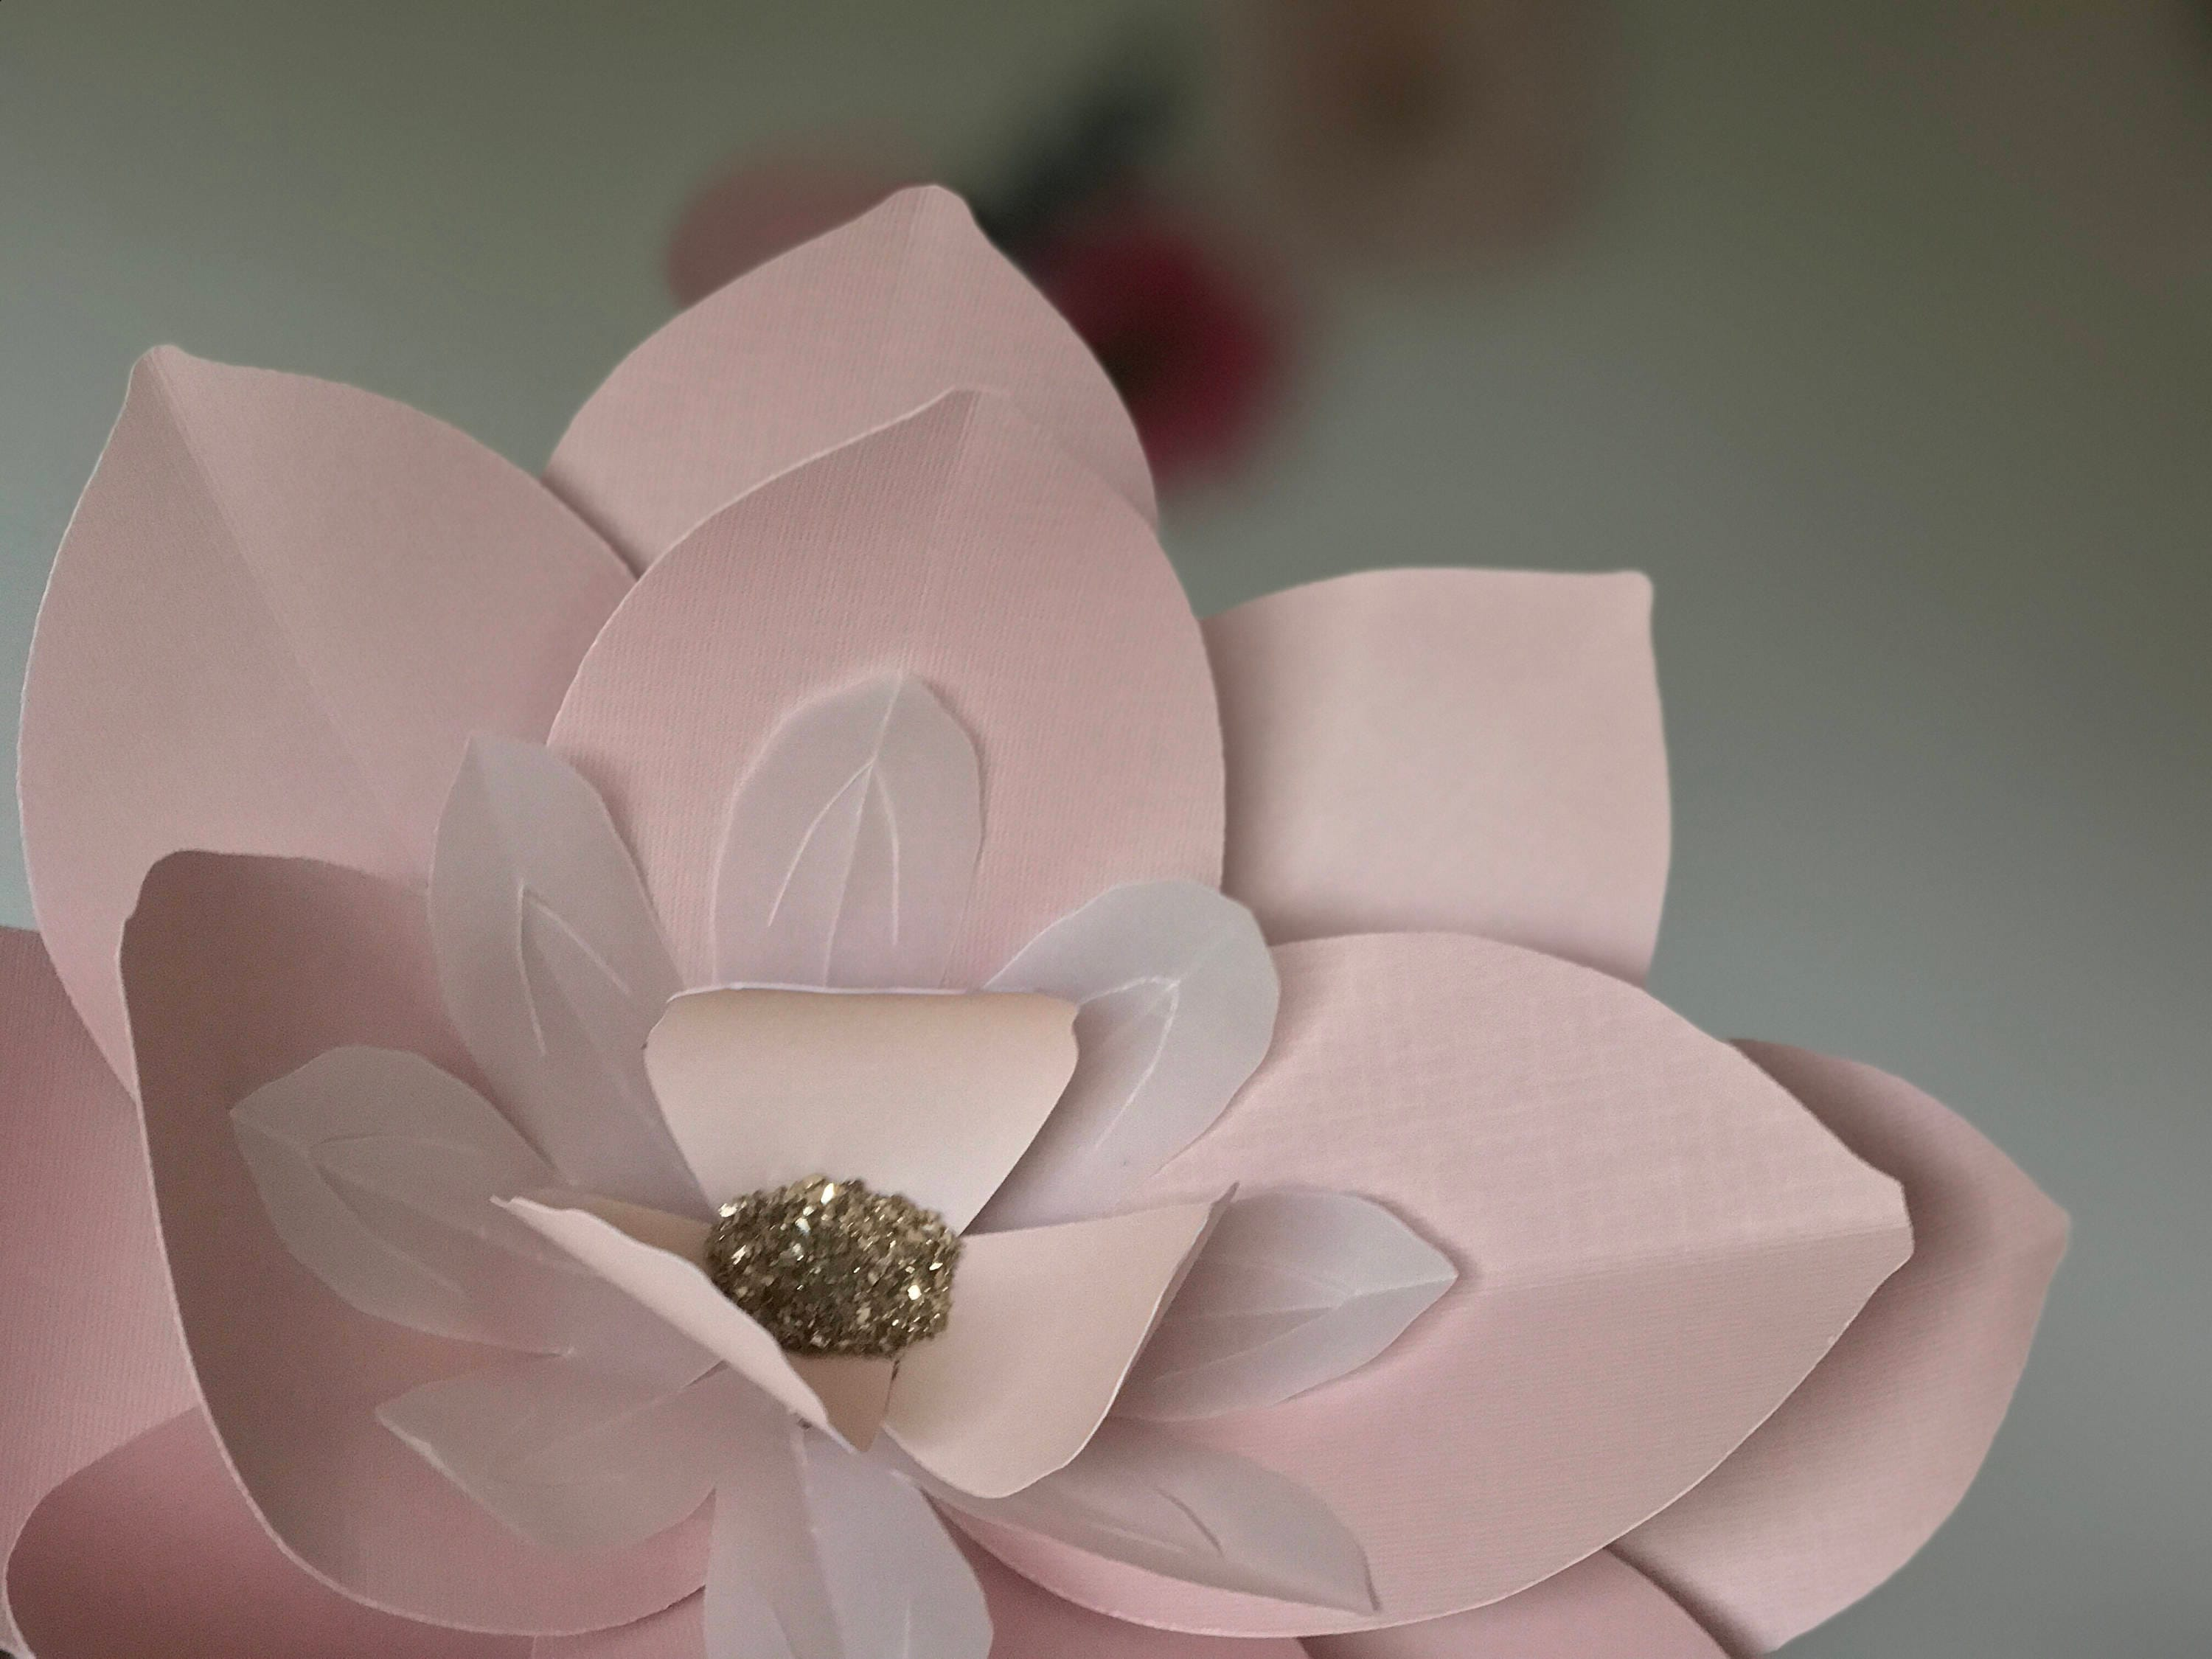 Paper flowers wall decor baby nursery wall decor huge paper paper flowers wall decor baby nursery wall decor huge paper flowers giant paper amipublicfo Images